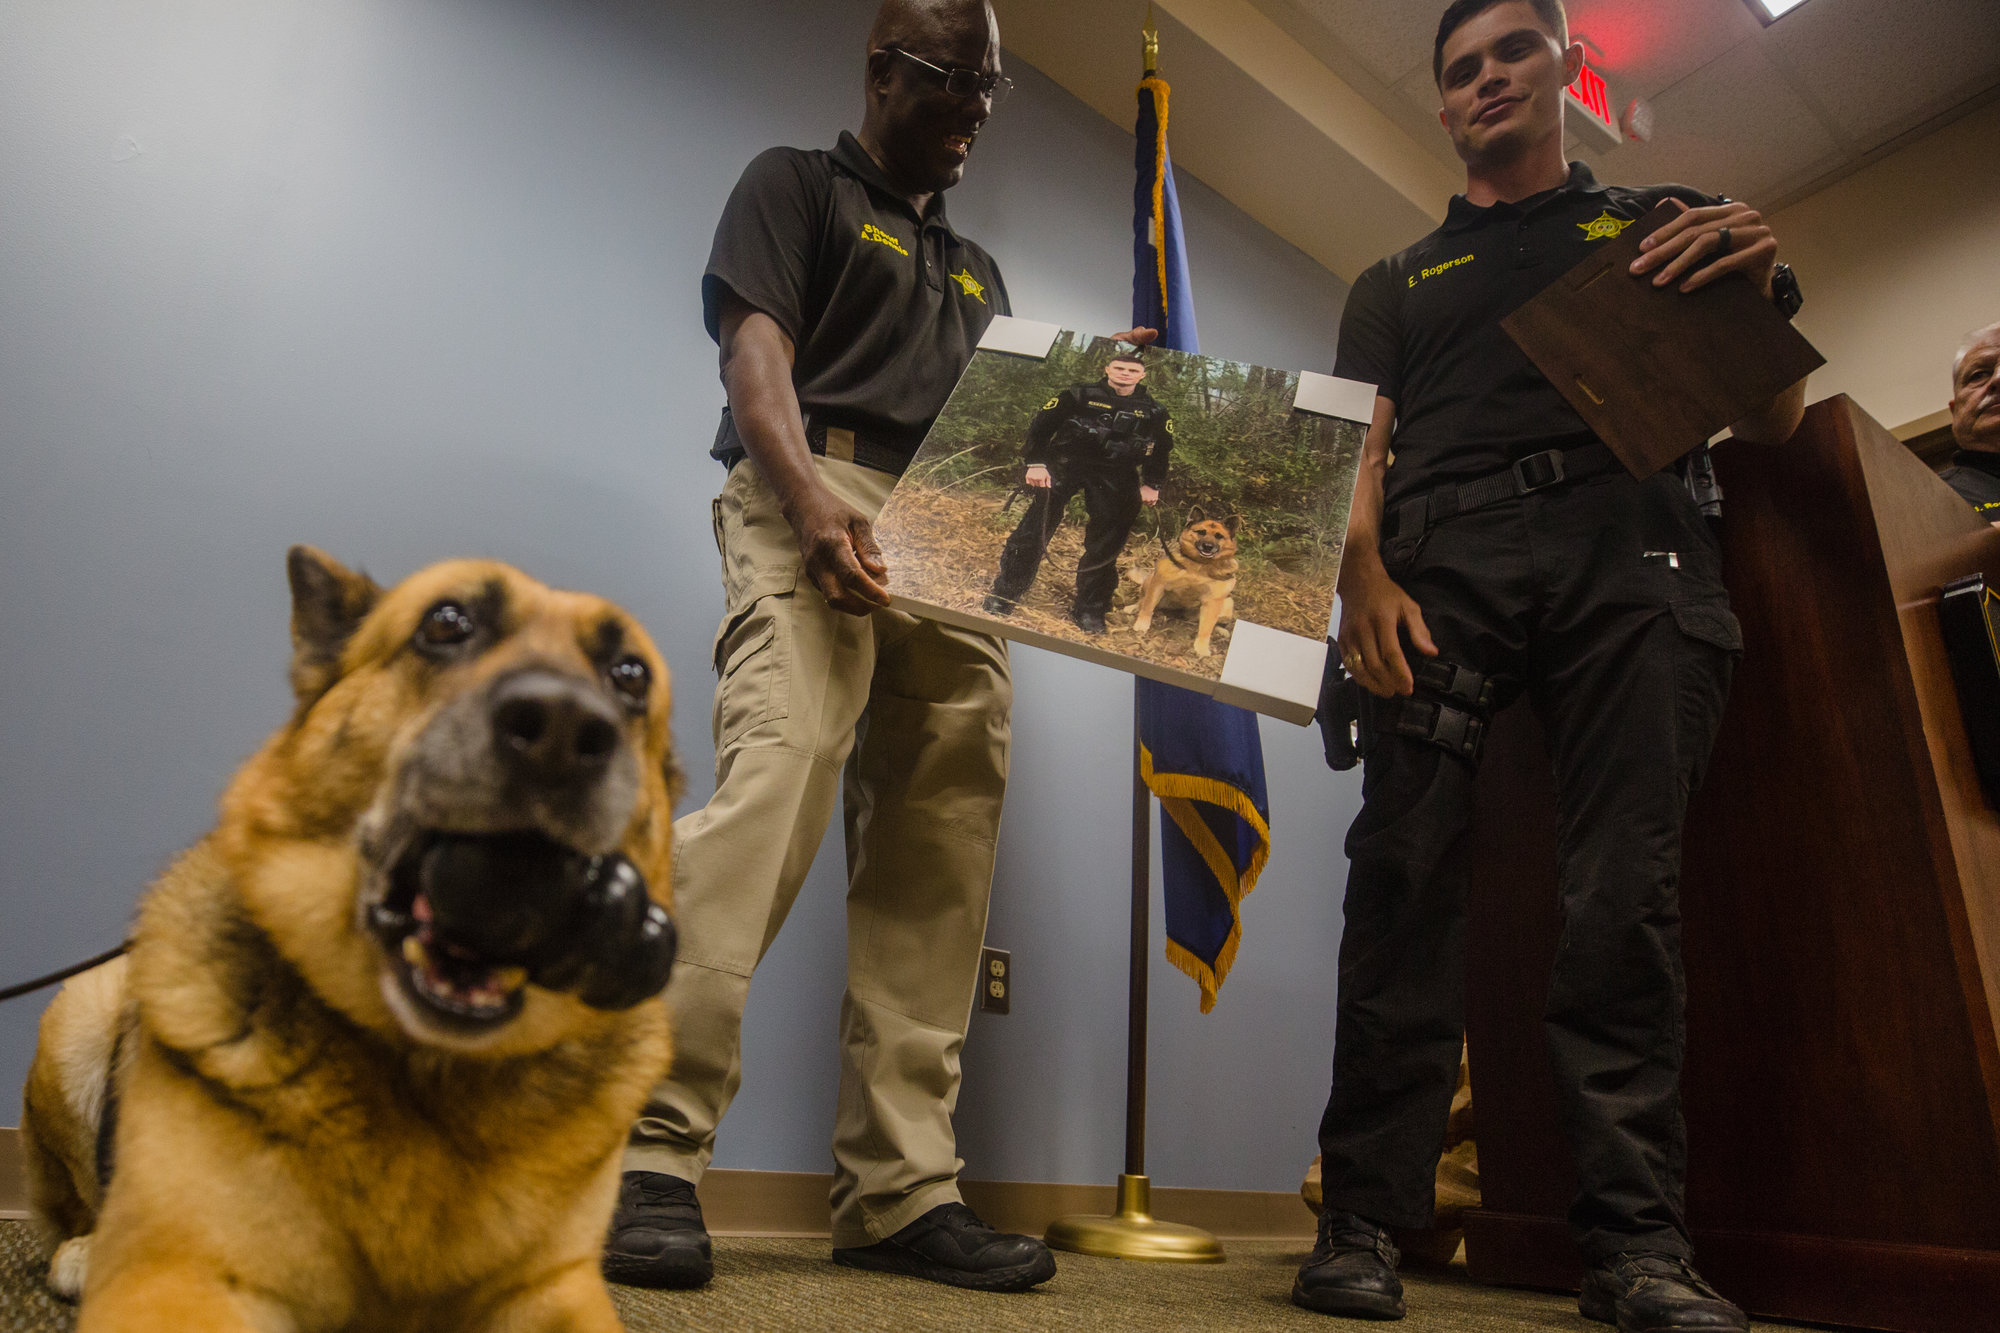 After nine years working as a K-9 with the Sumter County Sheriff's Office, Dina will now enjoy retirement at the home of her handler, Cpl. Evan Rogerson. She was congratulated during a ceremony Friday.